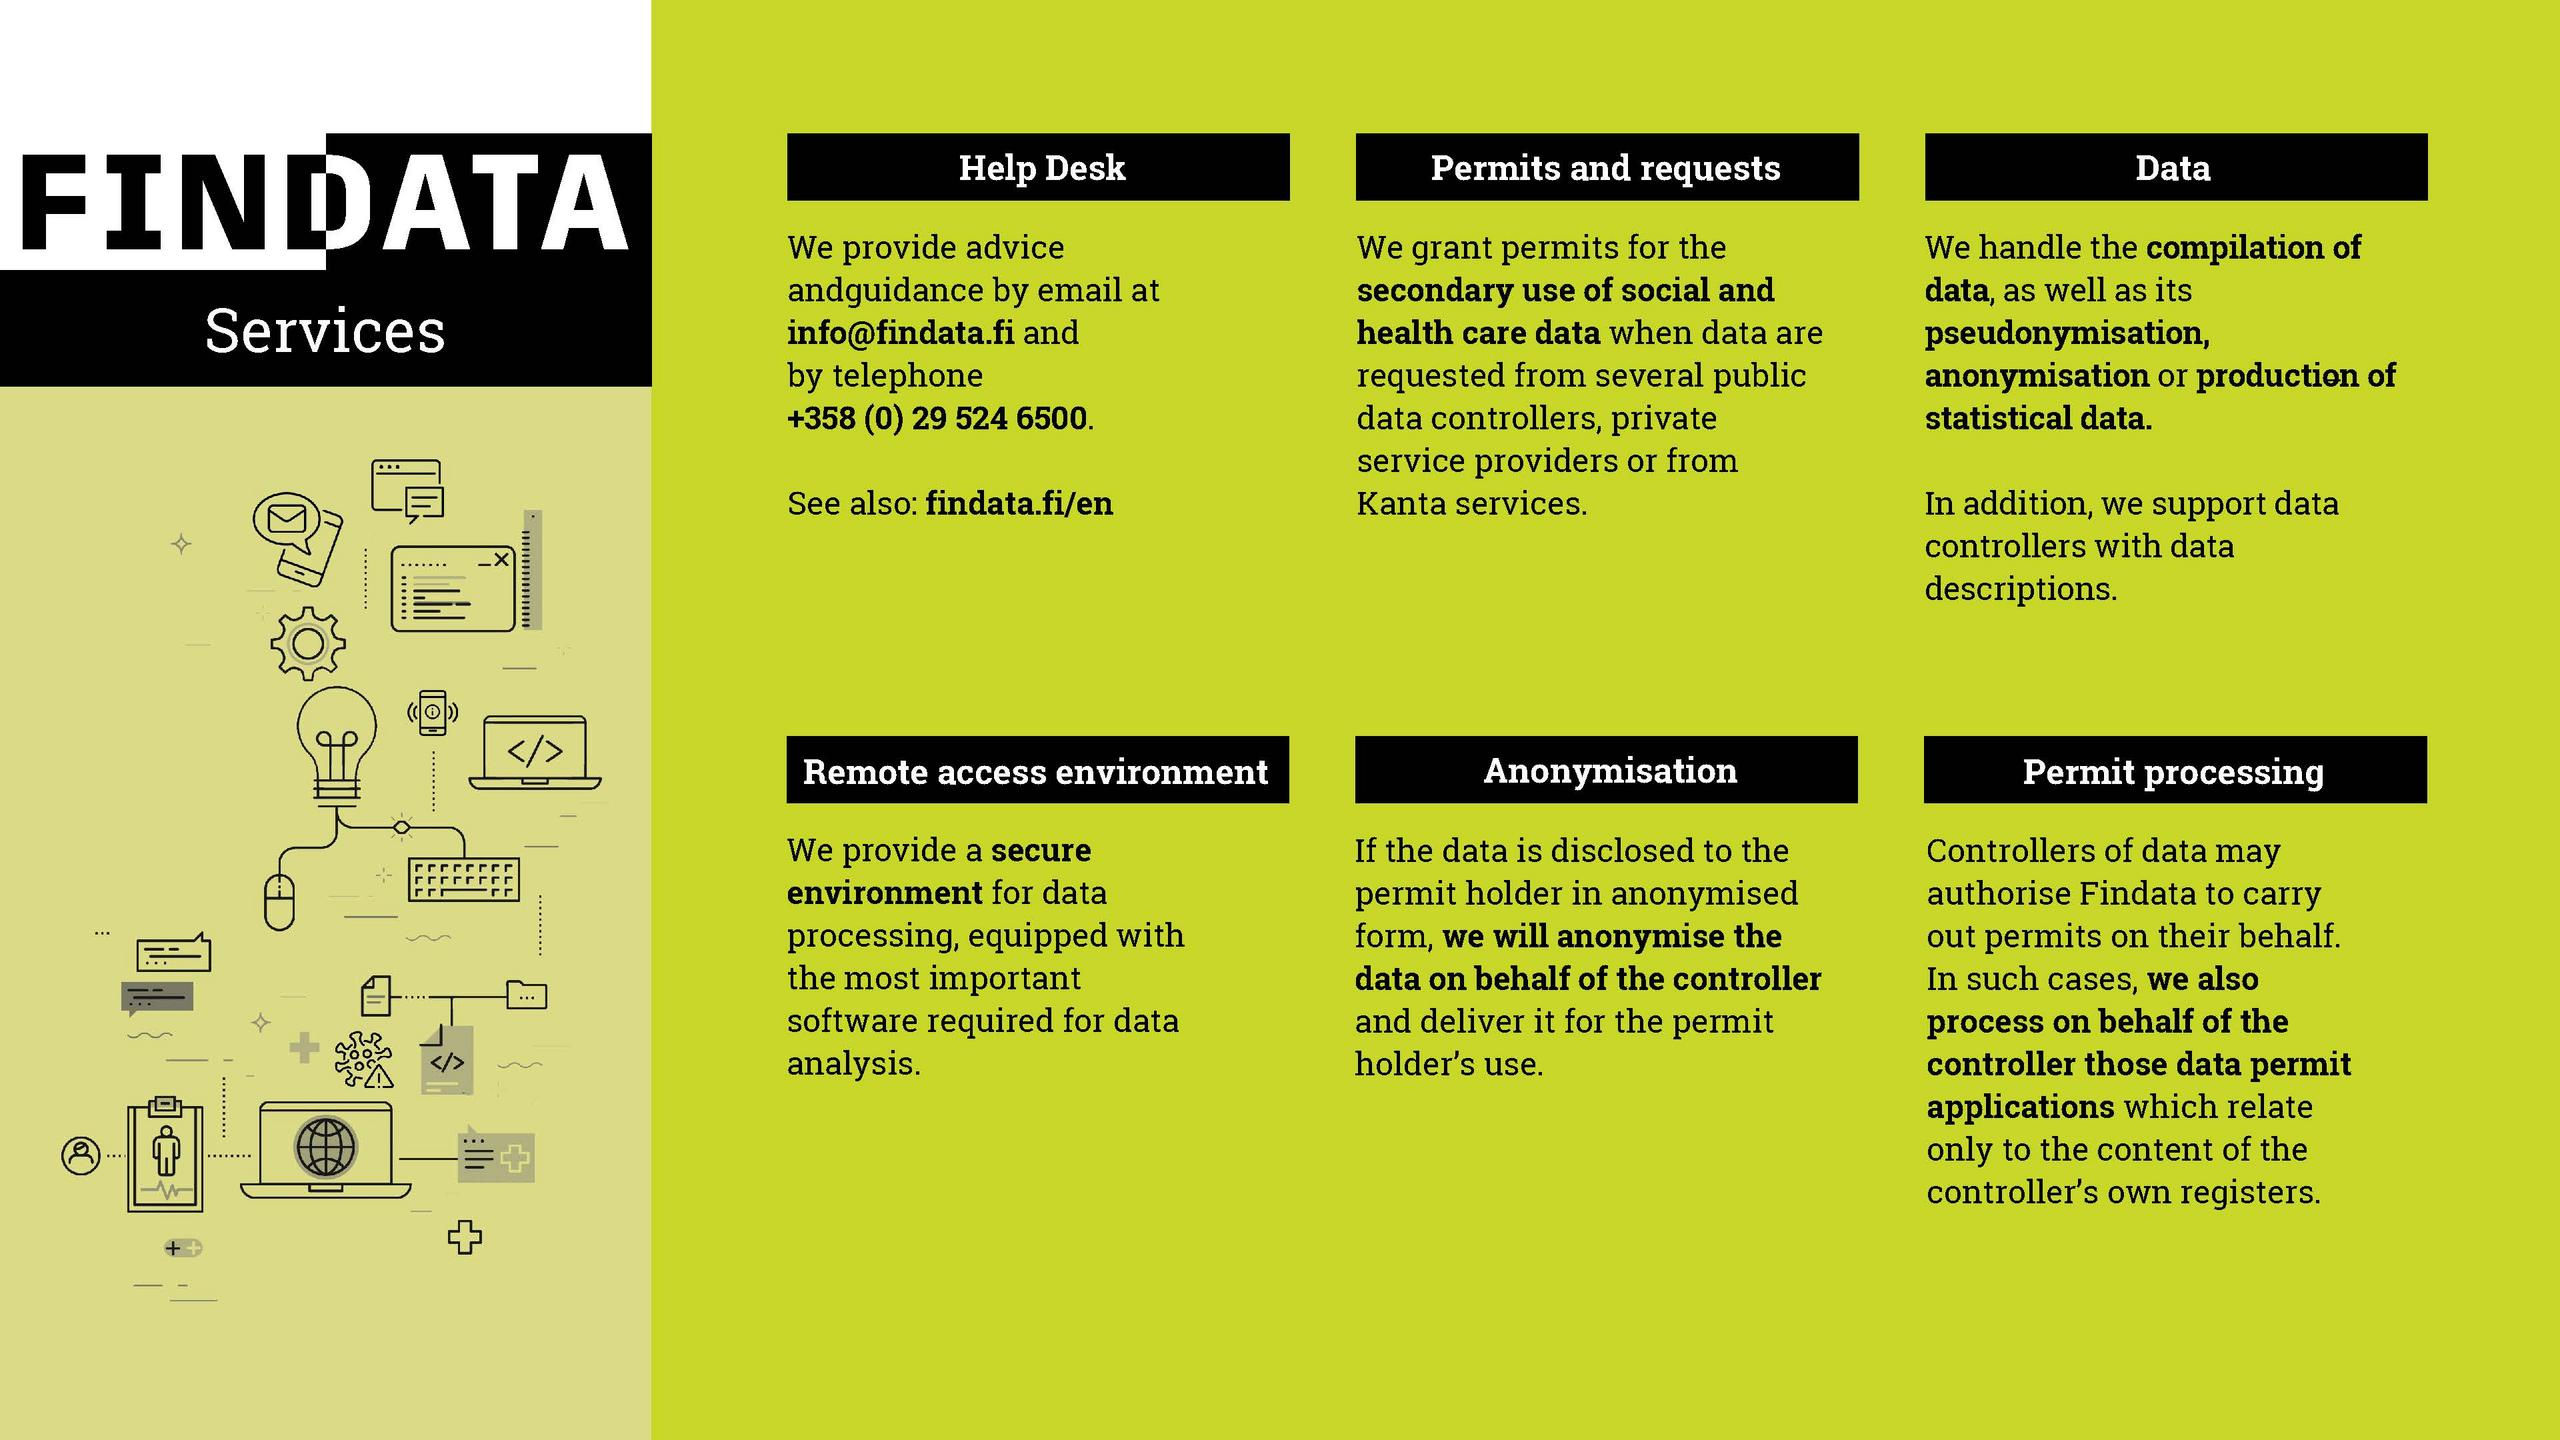 Findata's services. Accessible PDF can be found from the link above.